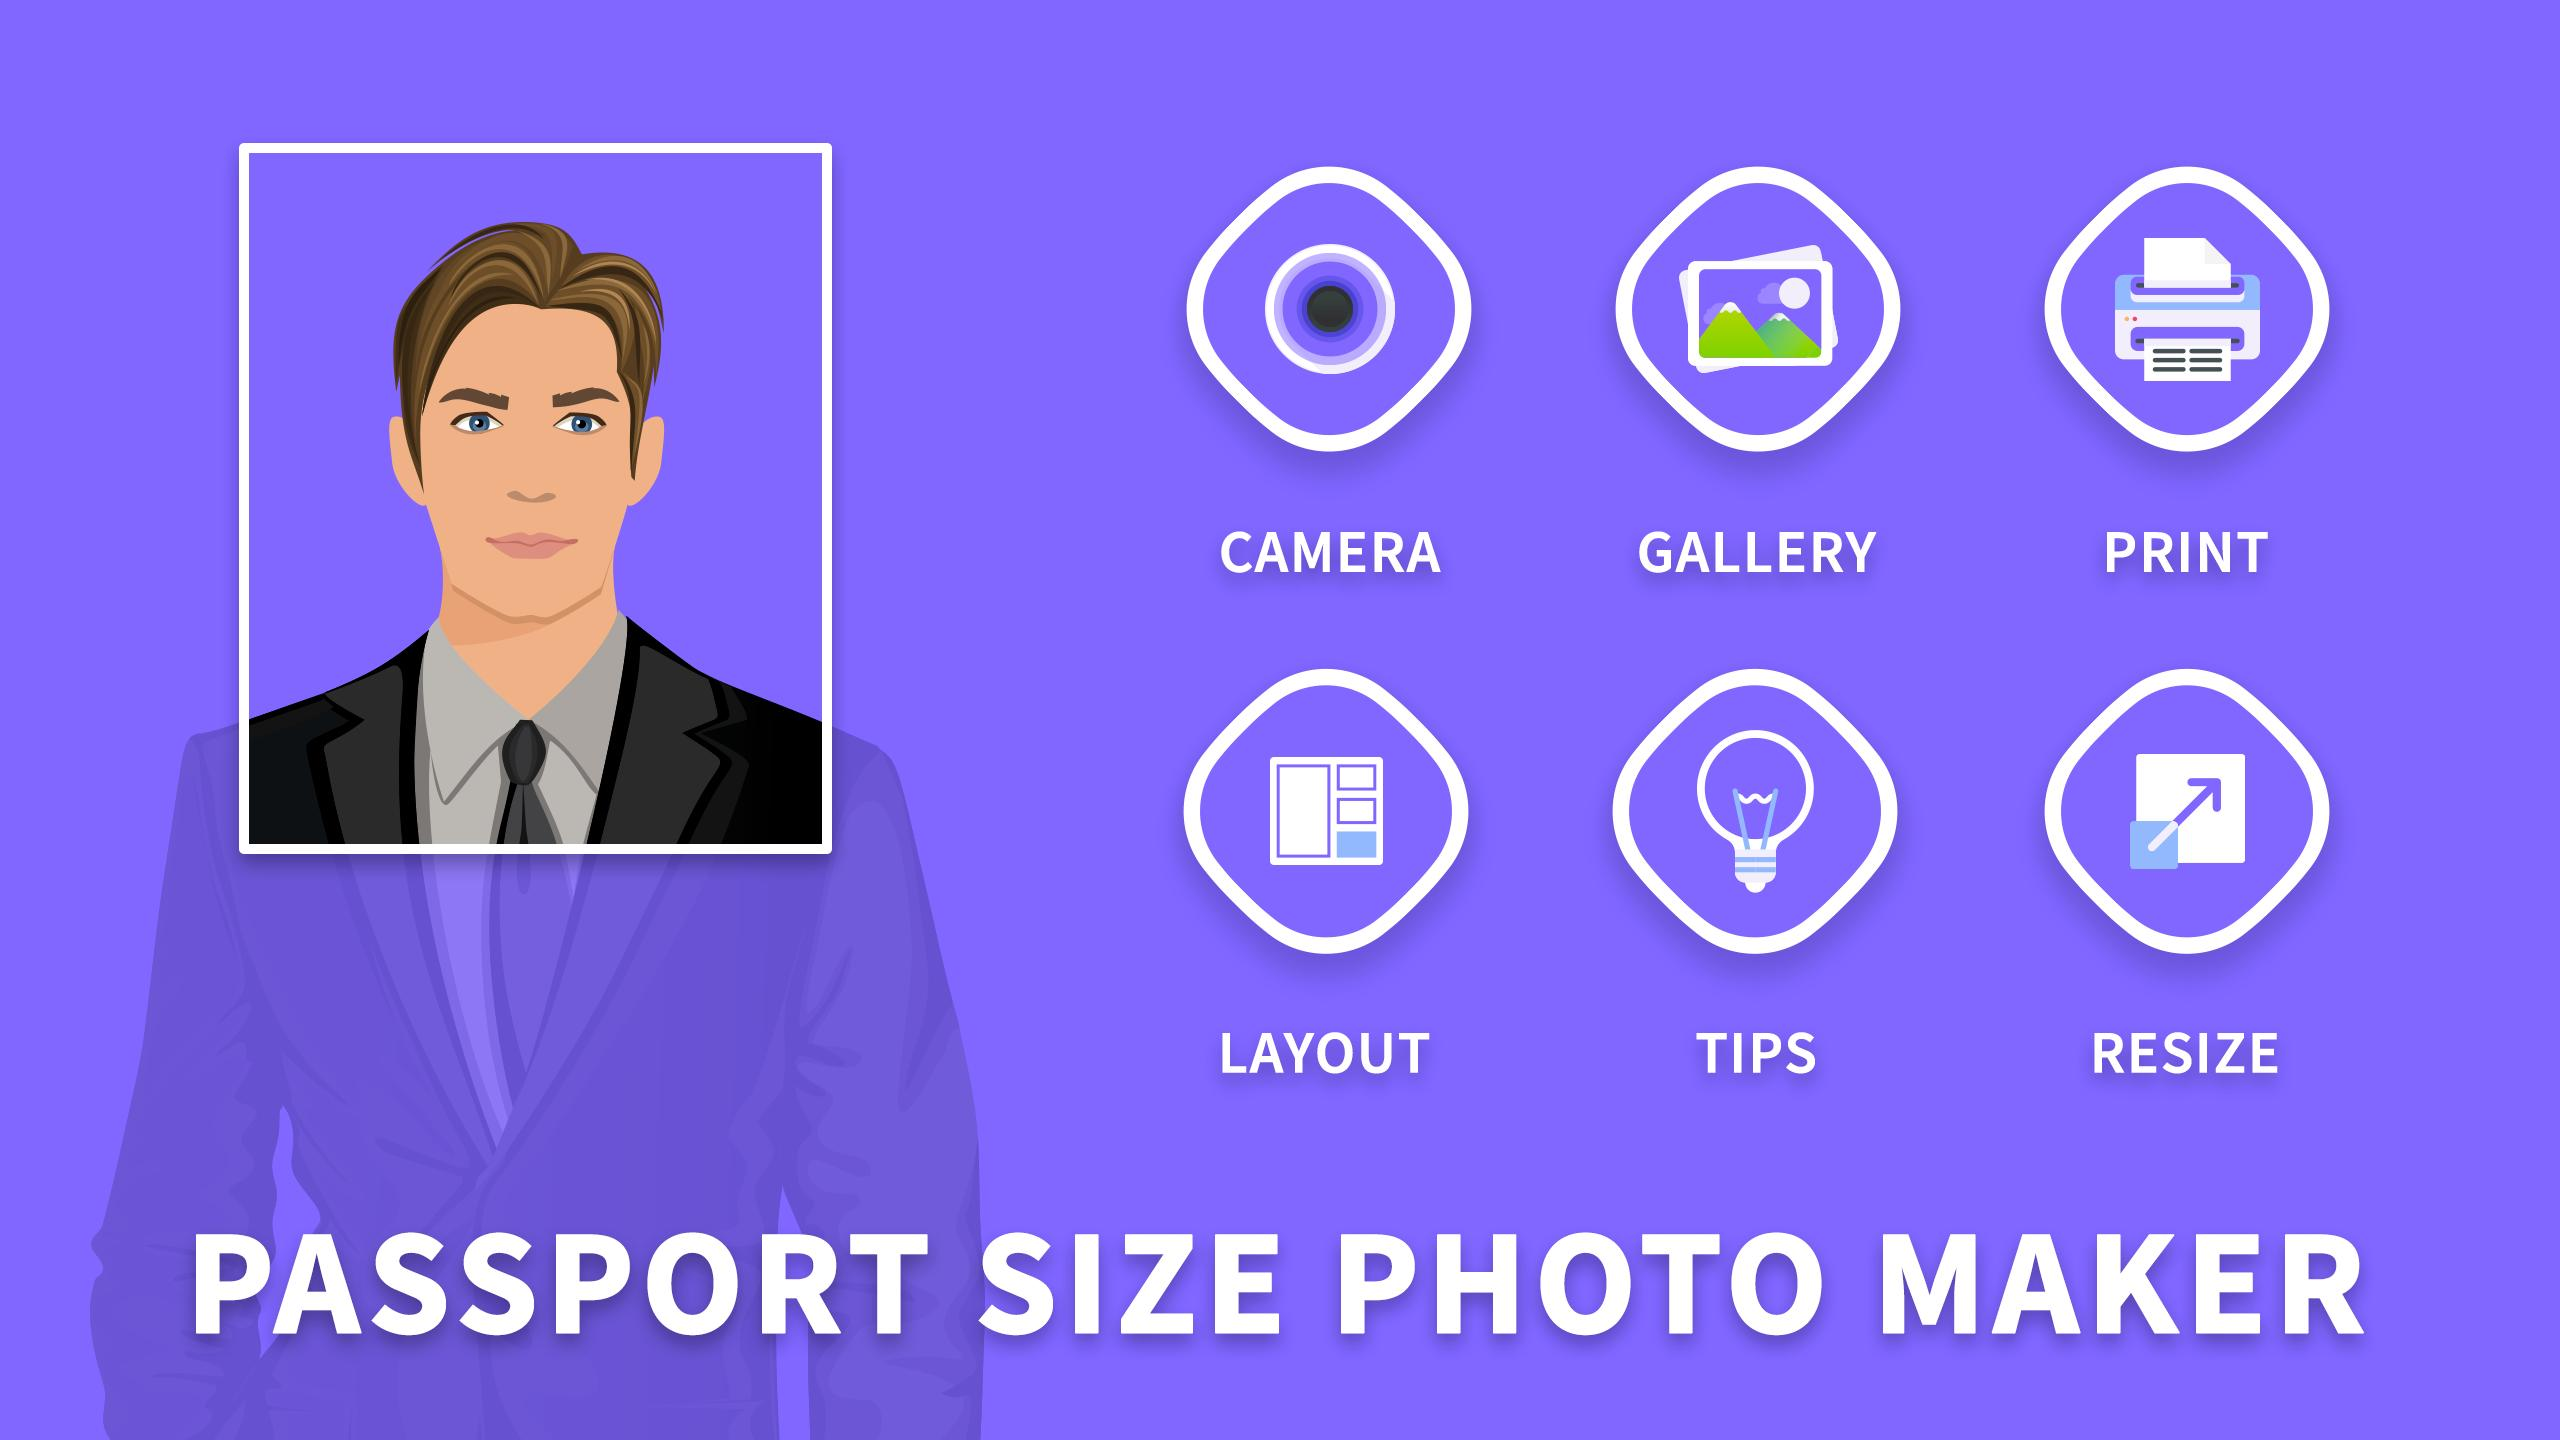 Passport photo id studio for android apk download.